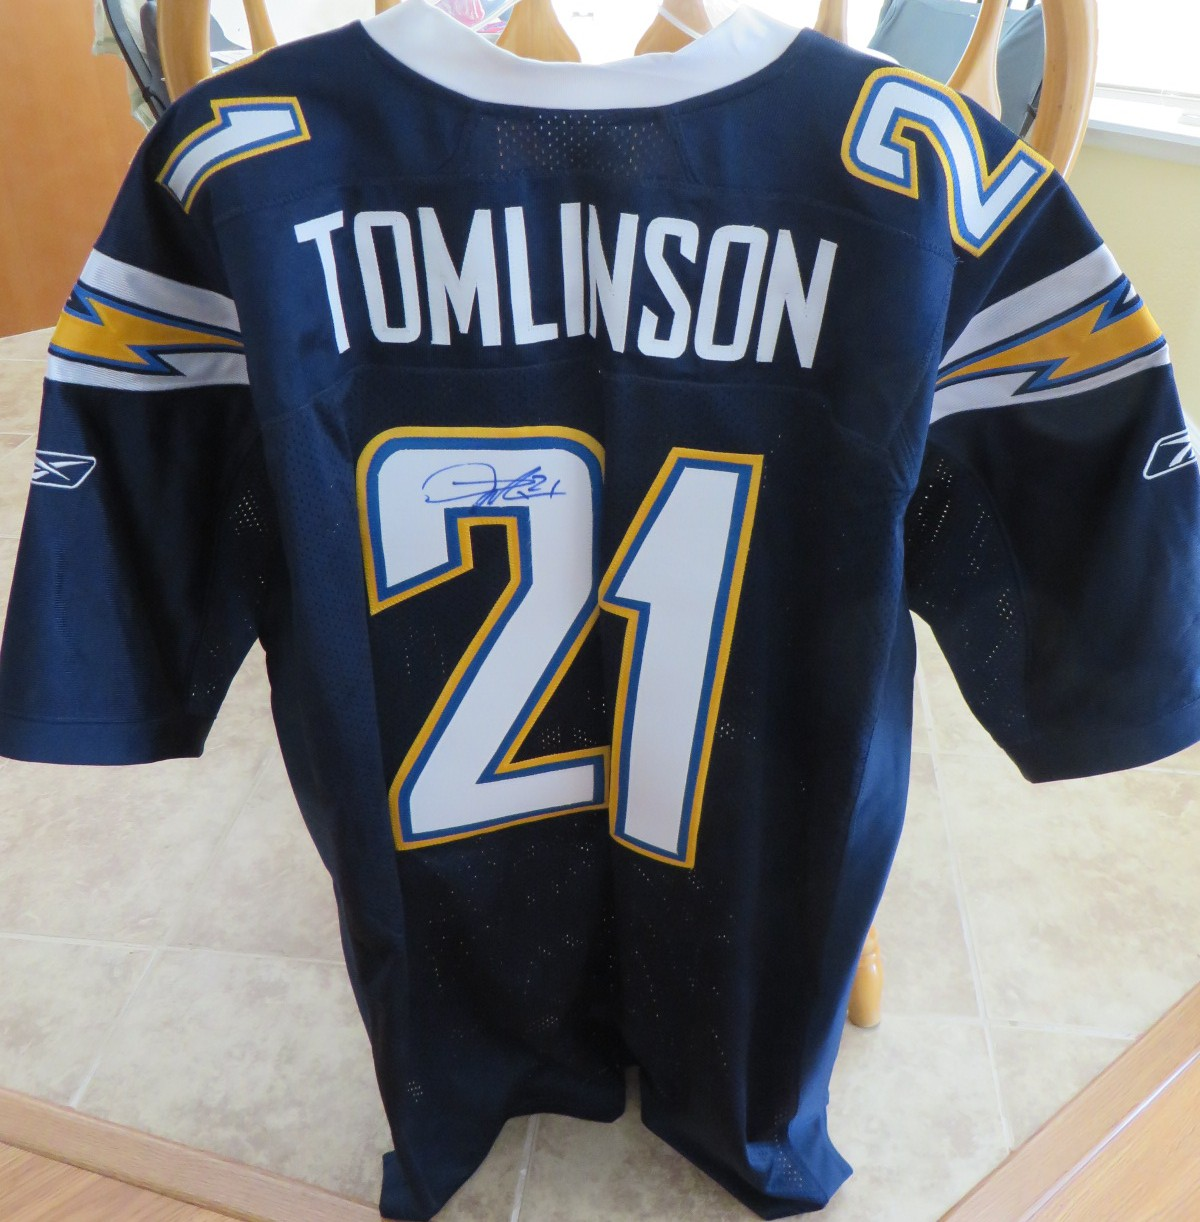 San Diego Chargers Basketball Jersey: LaDainian Tomlinson Autographed San Diego Chargers 2007